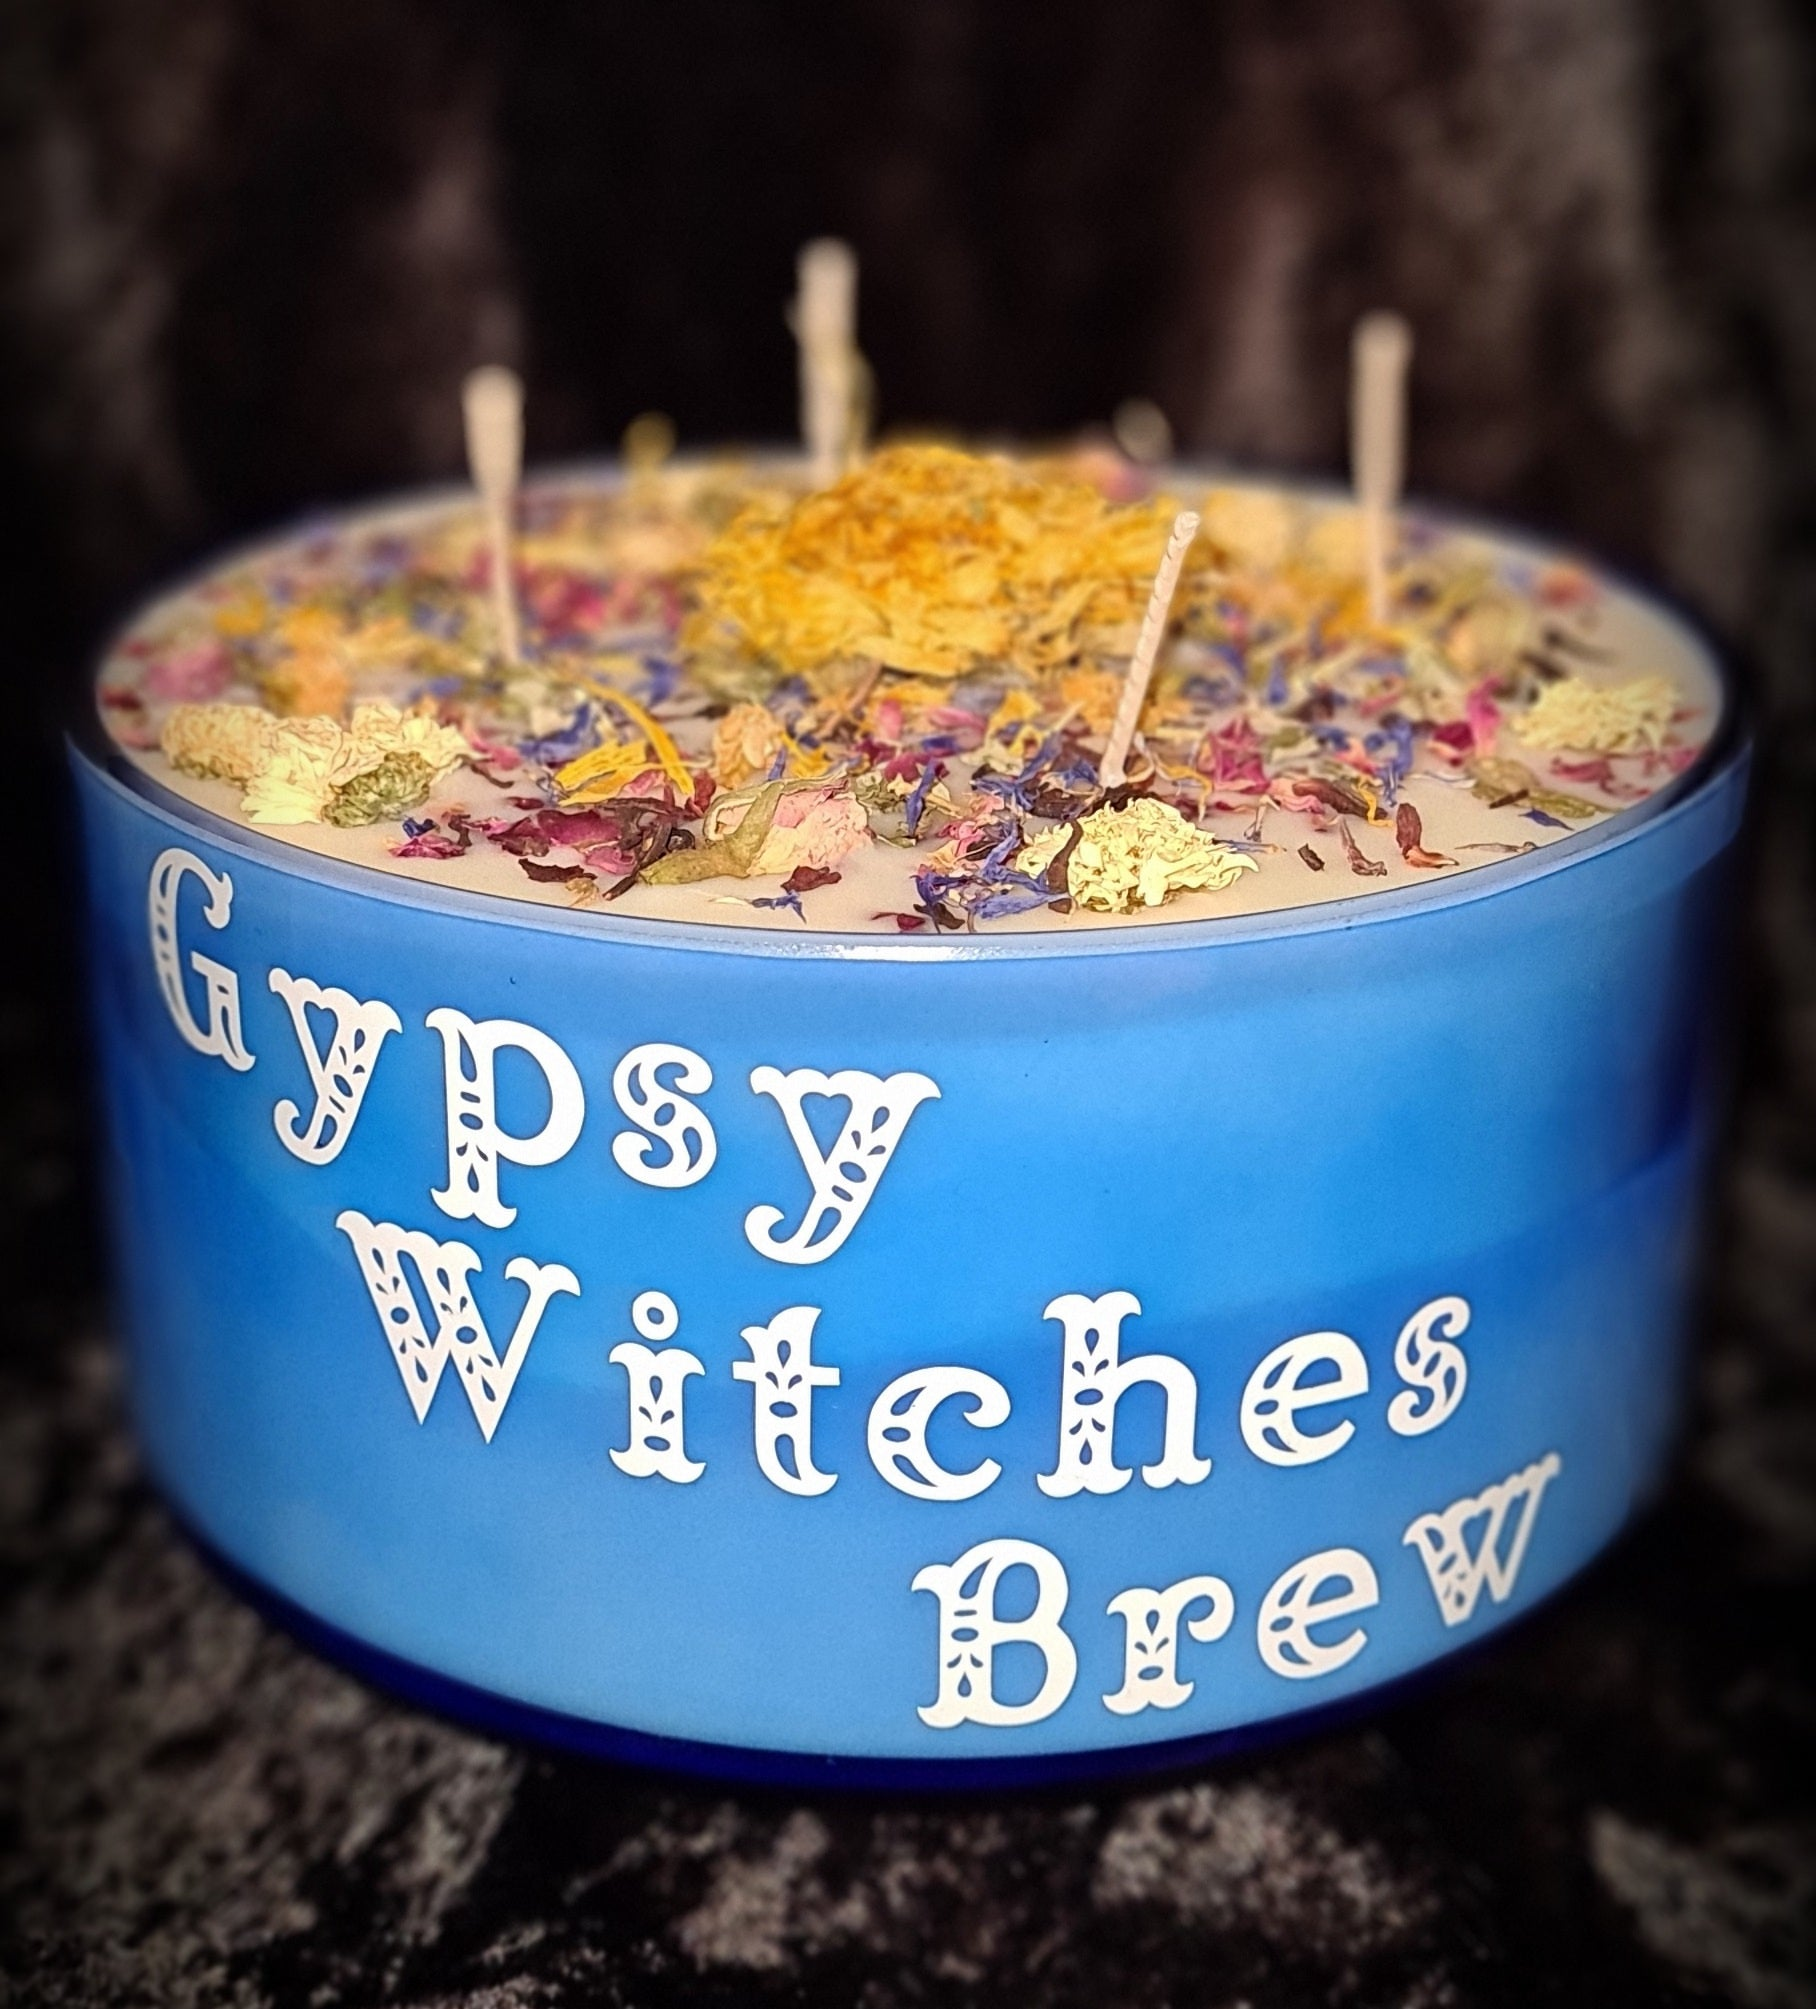 Gypsy Witches Brew